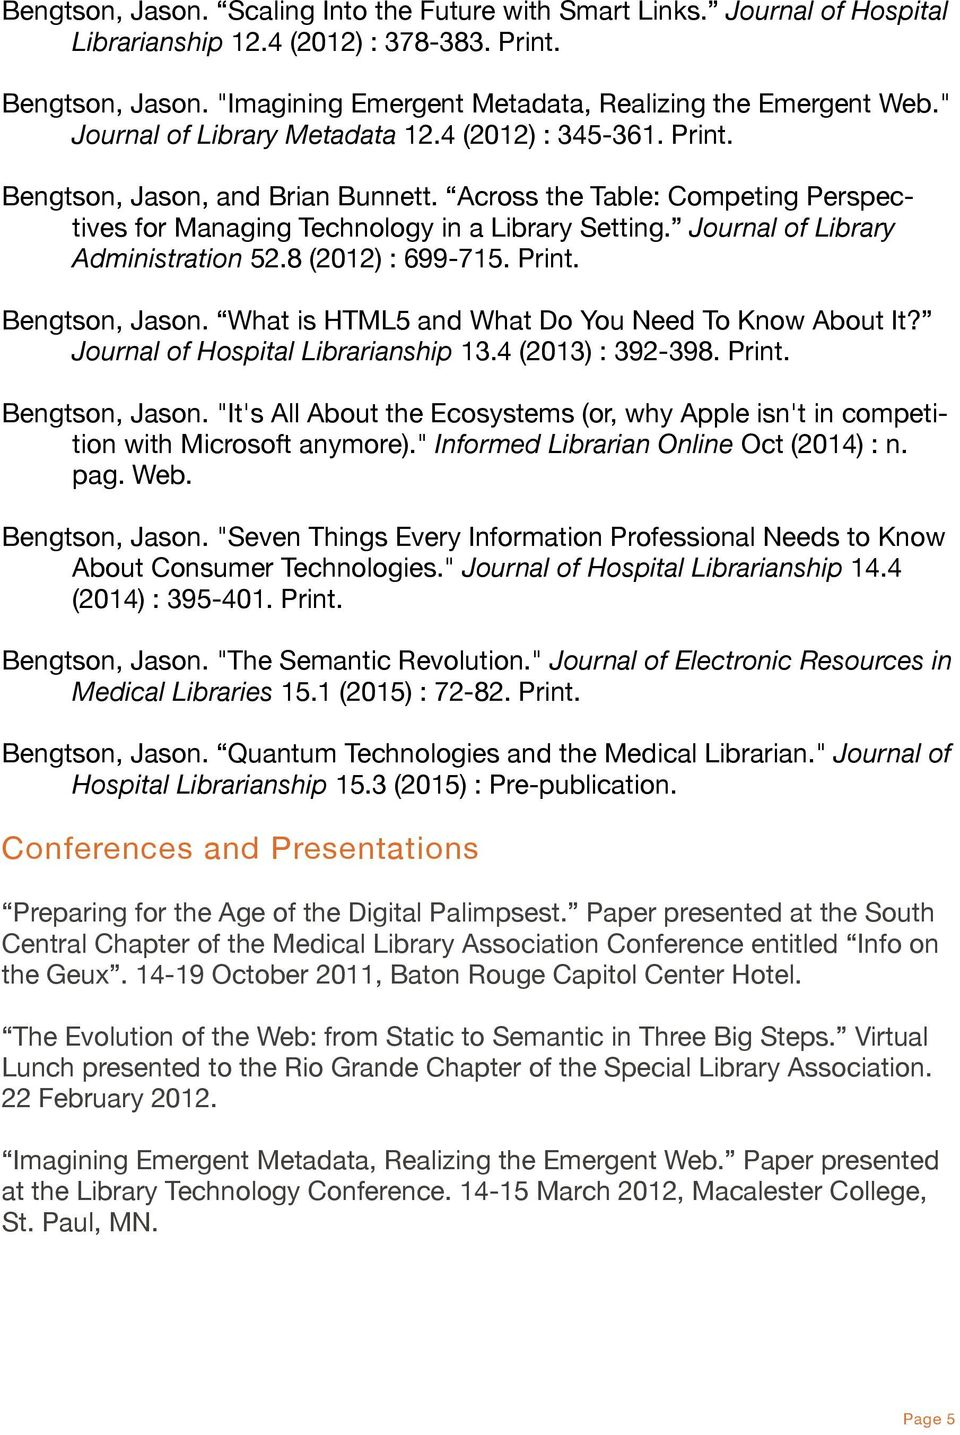 "Journal of Library Administration 52.8 (2012) : 699-715. Print. Bengtson, Jason. What is HTML5 and What Do You Need To Know About It? Journal of Hospital Librarianship 13.4 (2013) : 392-398. Print. Bengtson, Jason. ""It's All About the Ecosystems (or, why Apple isn't in competition with Microsoft anymore)."